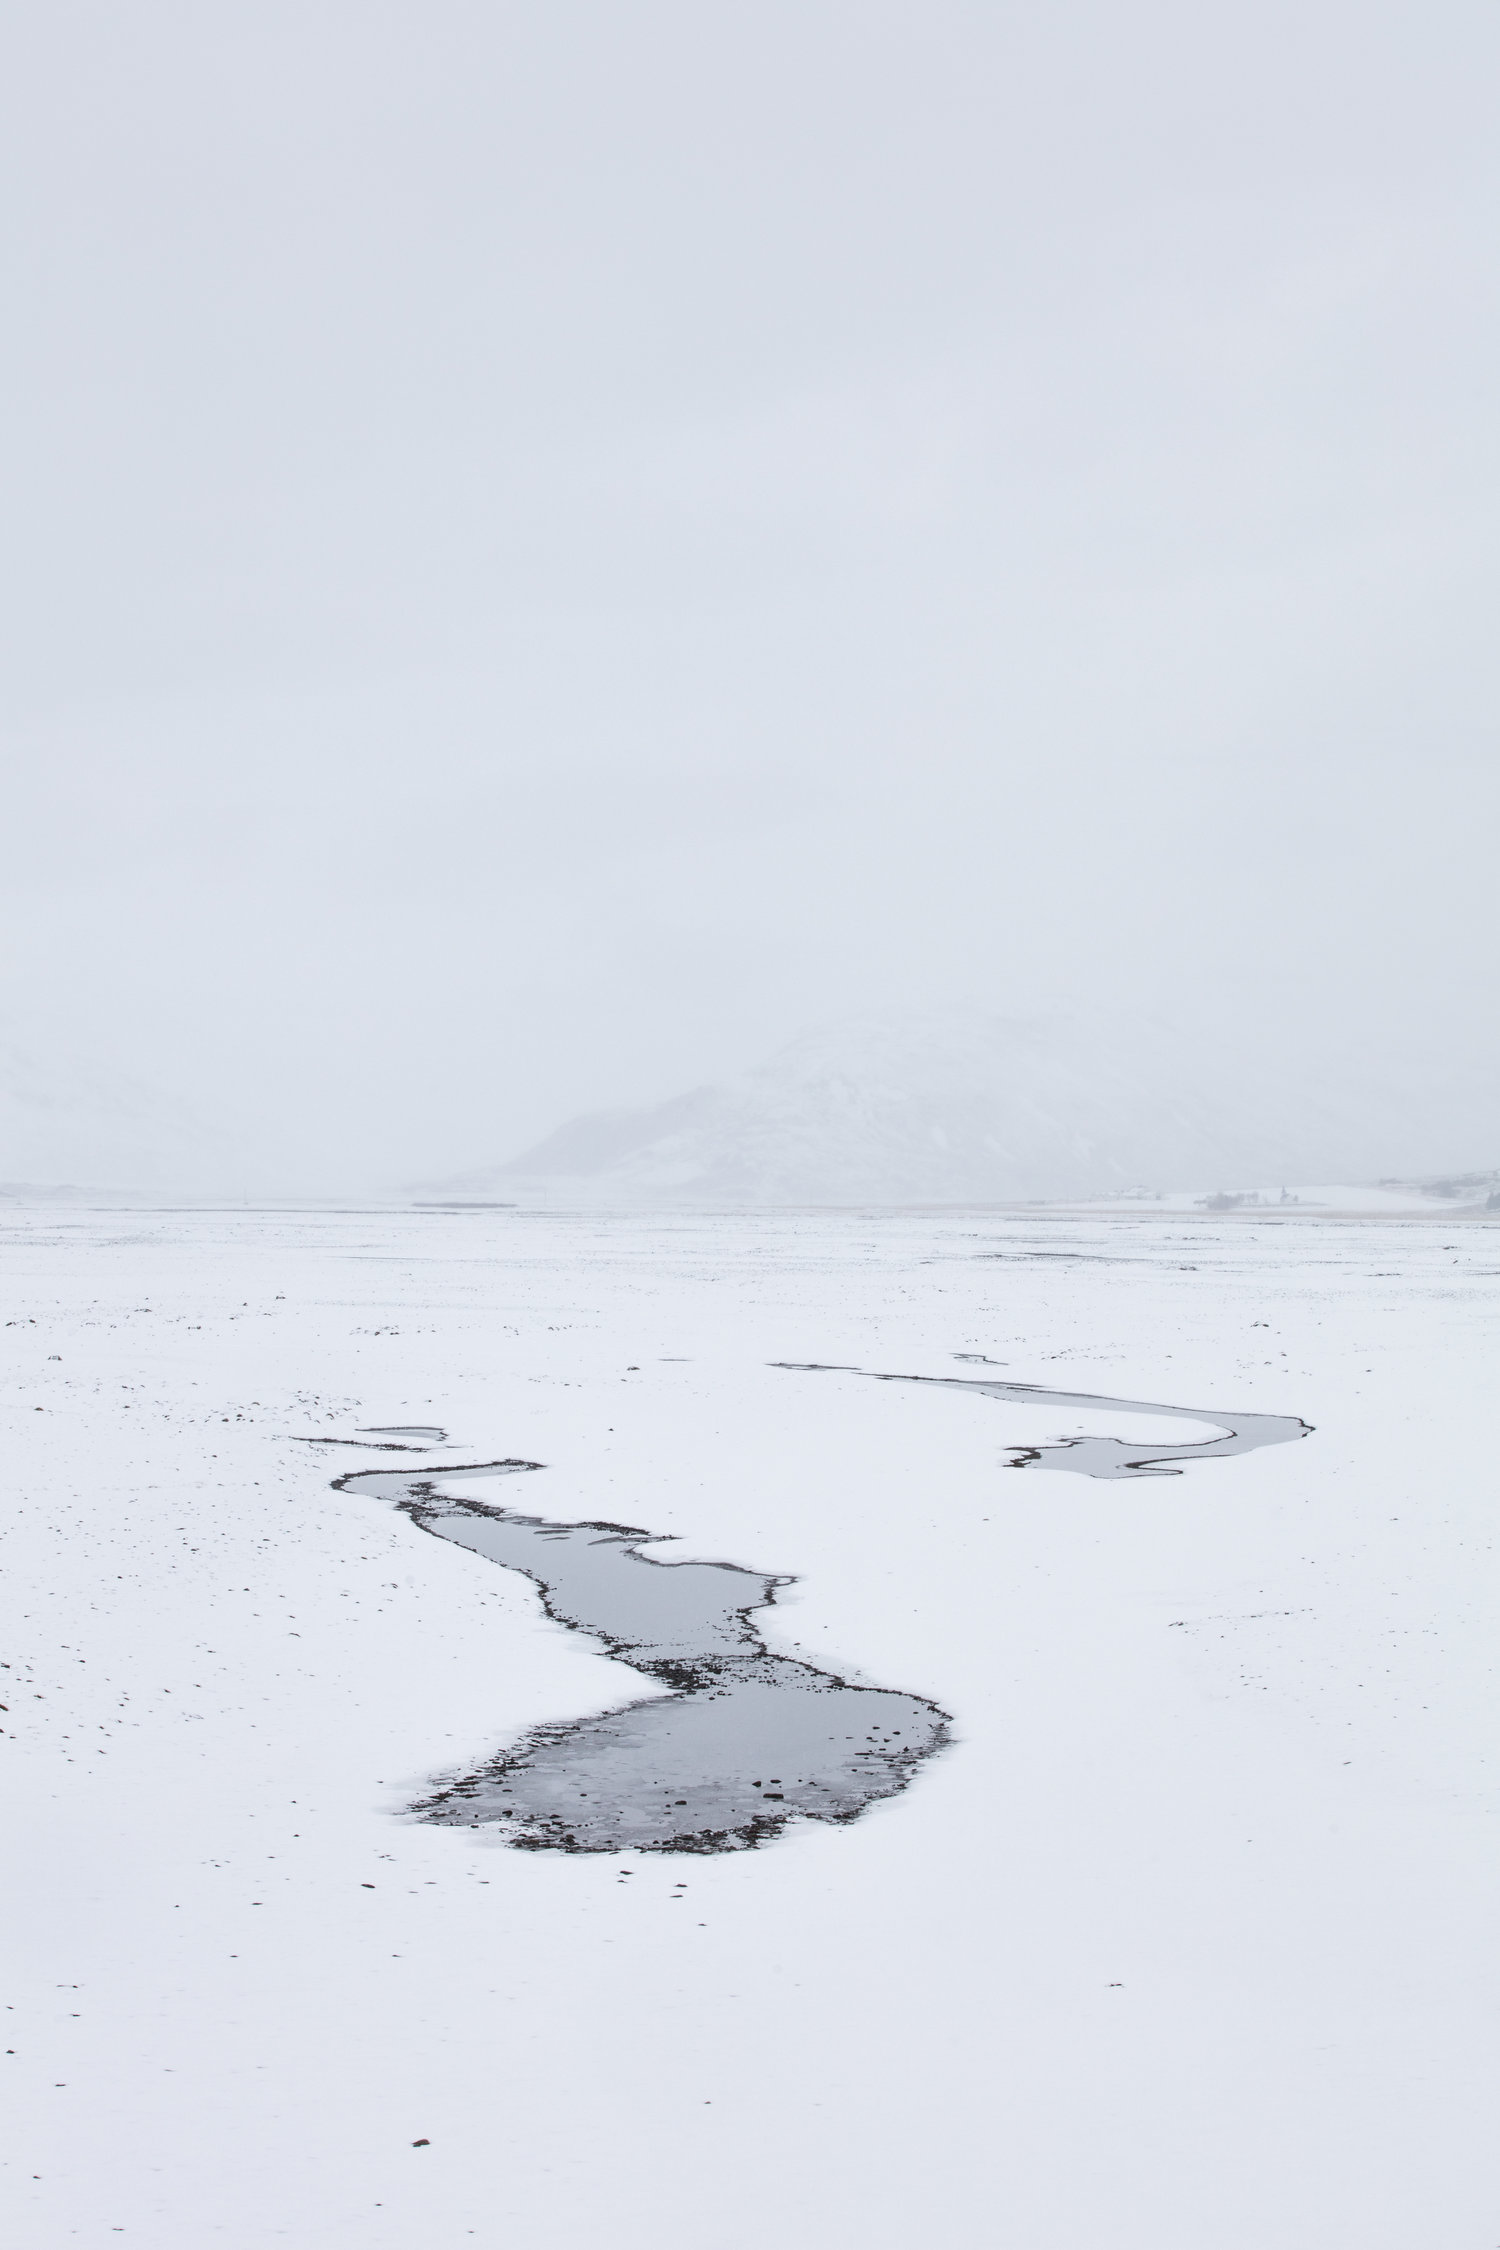 Lakes+form+as+the+snow+starts+to+melt+|+East+Iceland+-+Faune.jpg